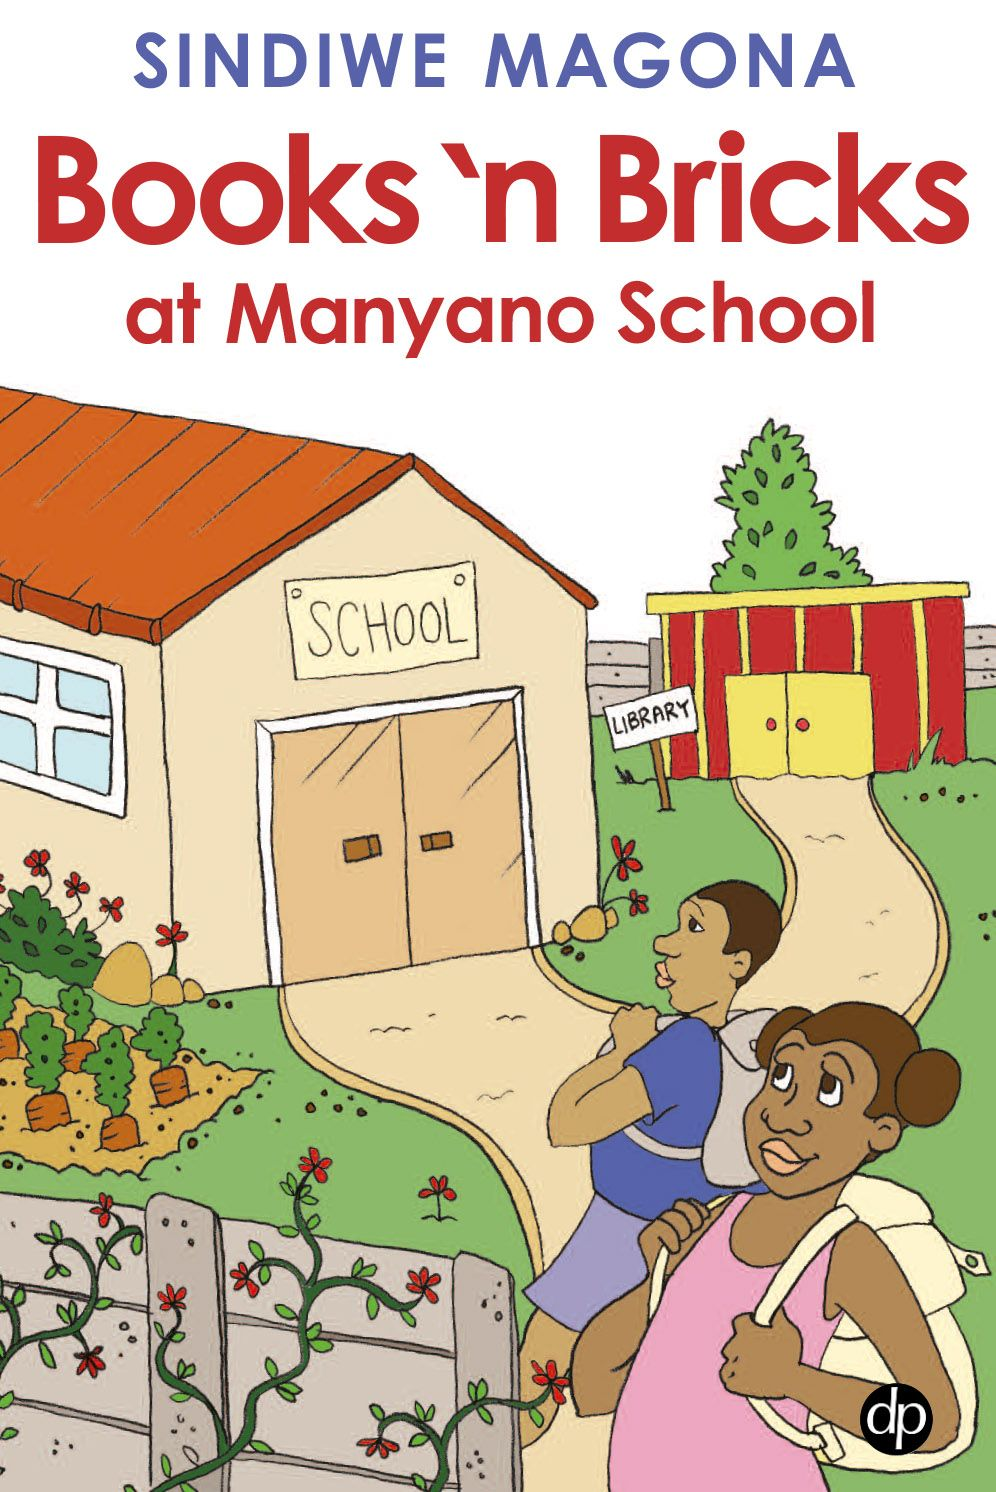 Books 'n Bricks at Manyano School - Sindiwe Magona